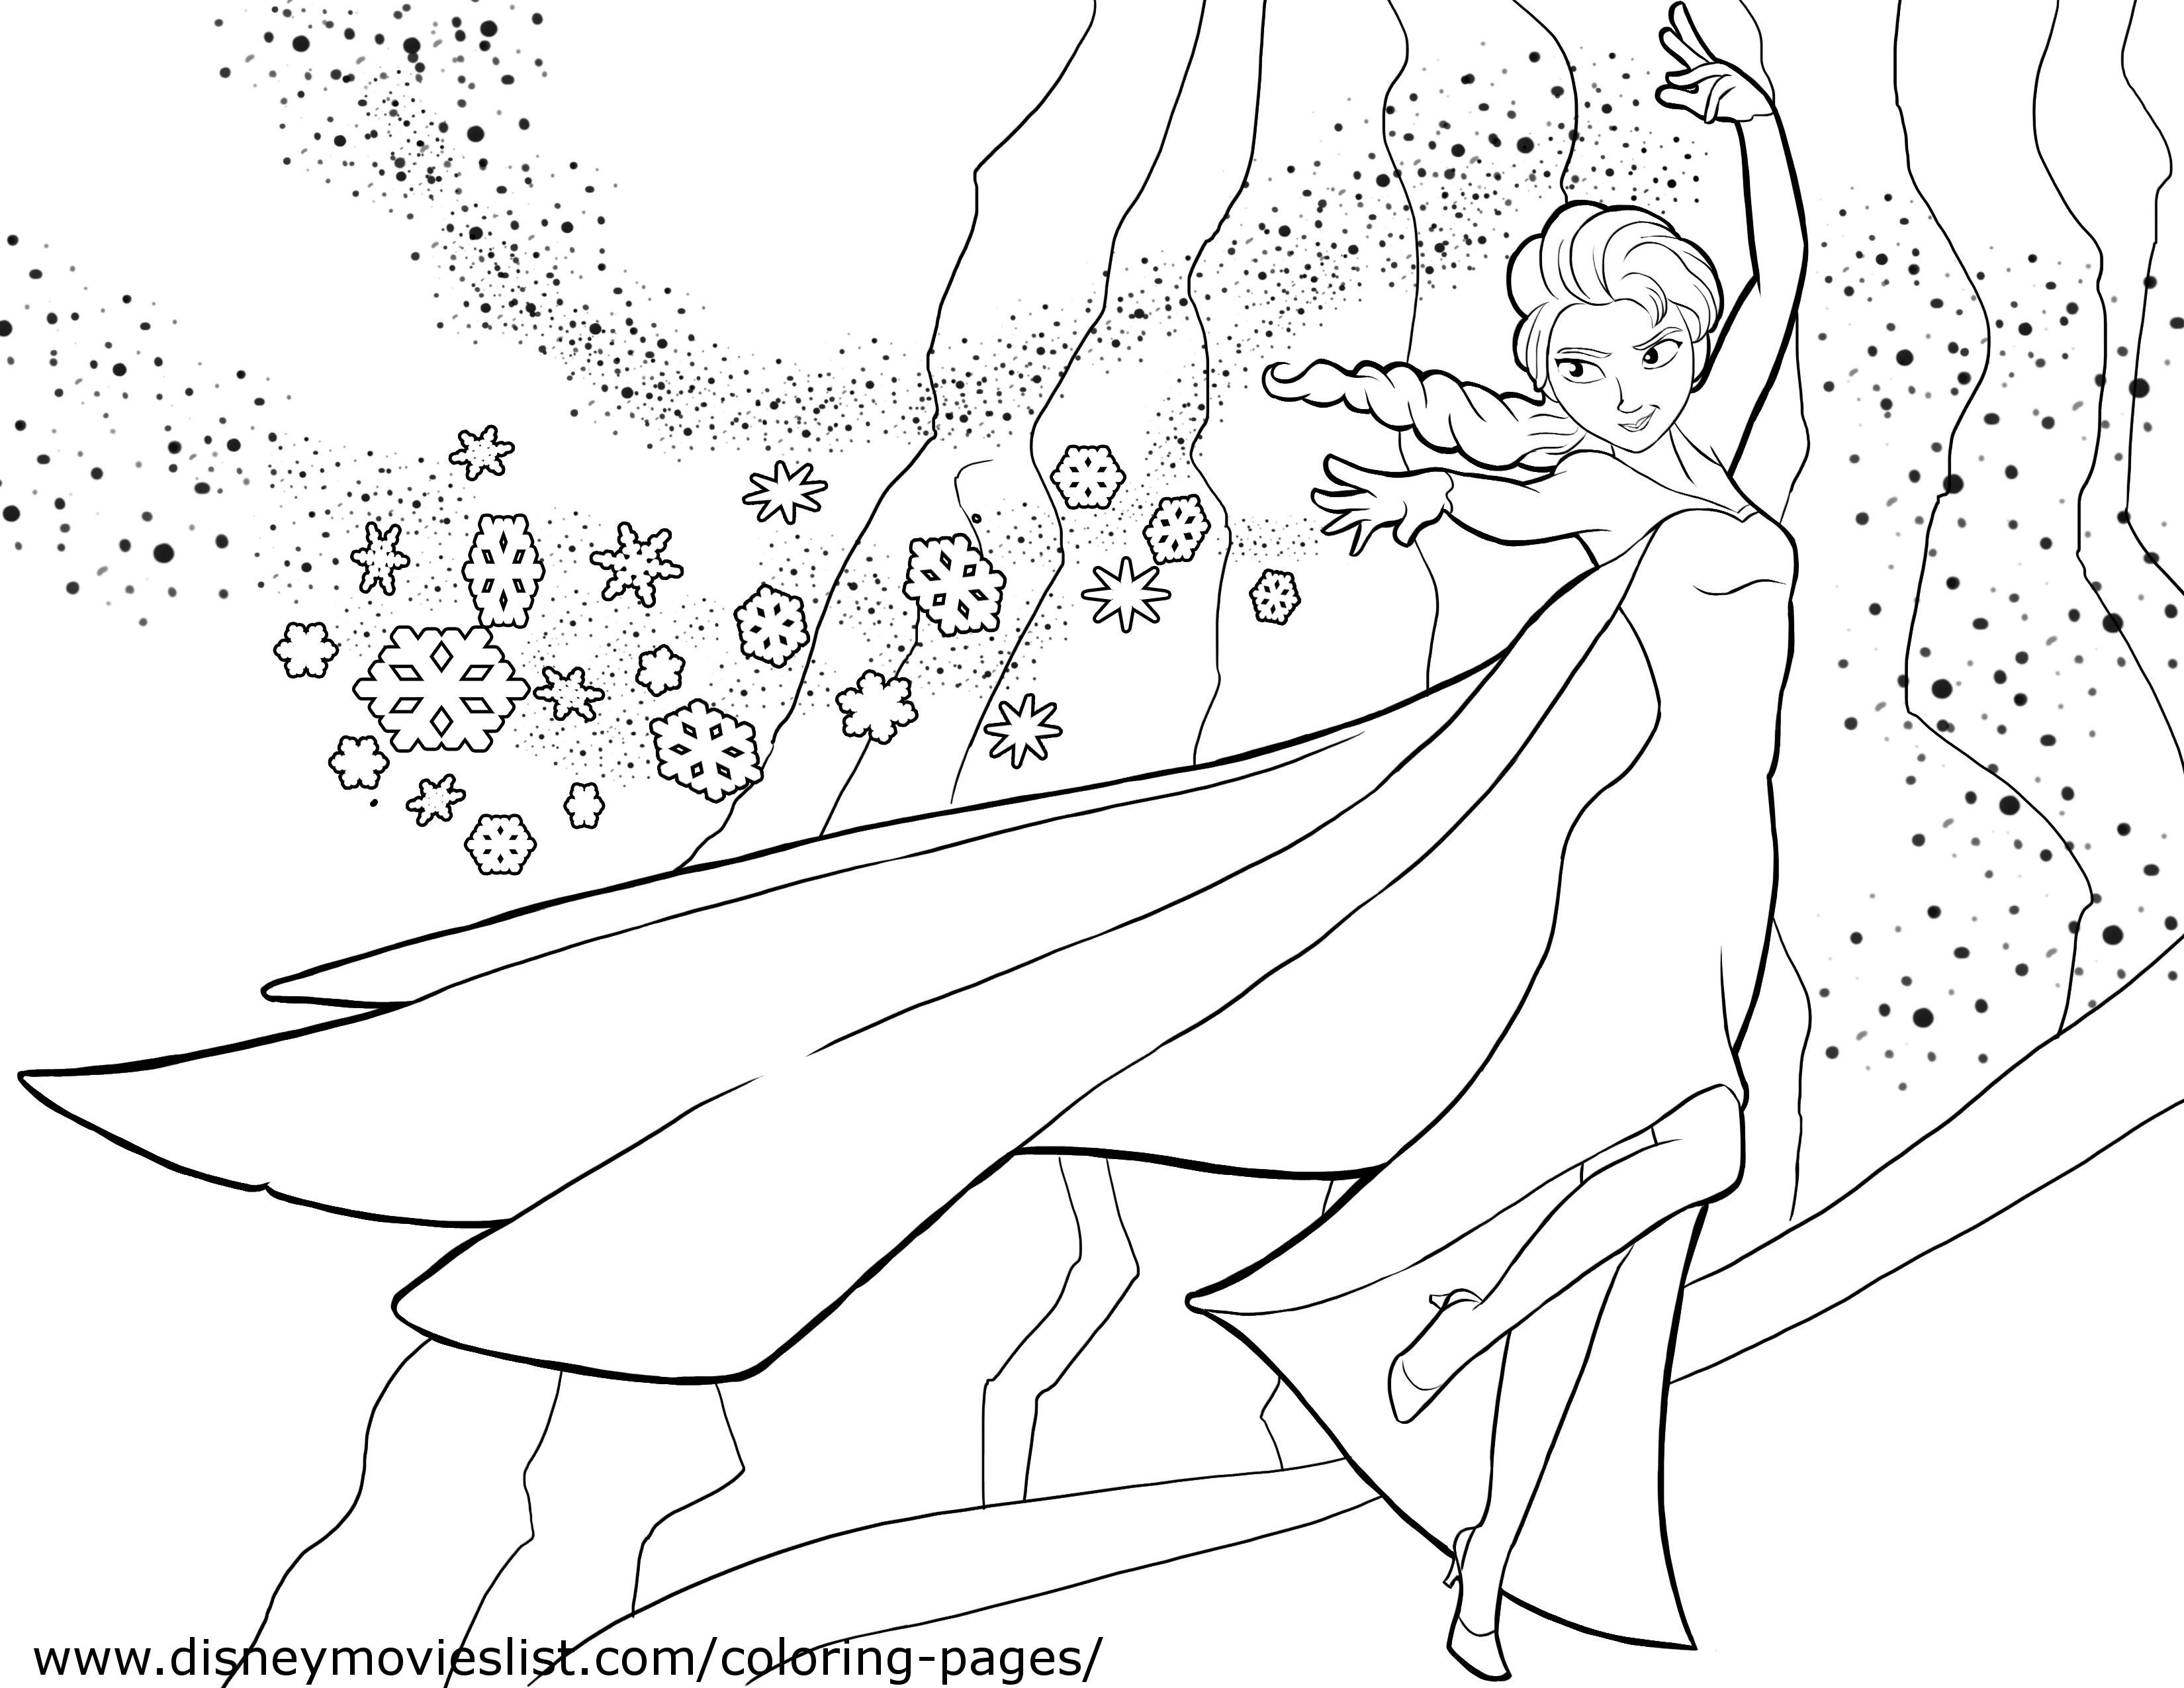 Disney Frozen Coloring Pages  Disney FROZEN Coloring Pages Lovebugs and Postcards